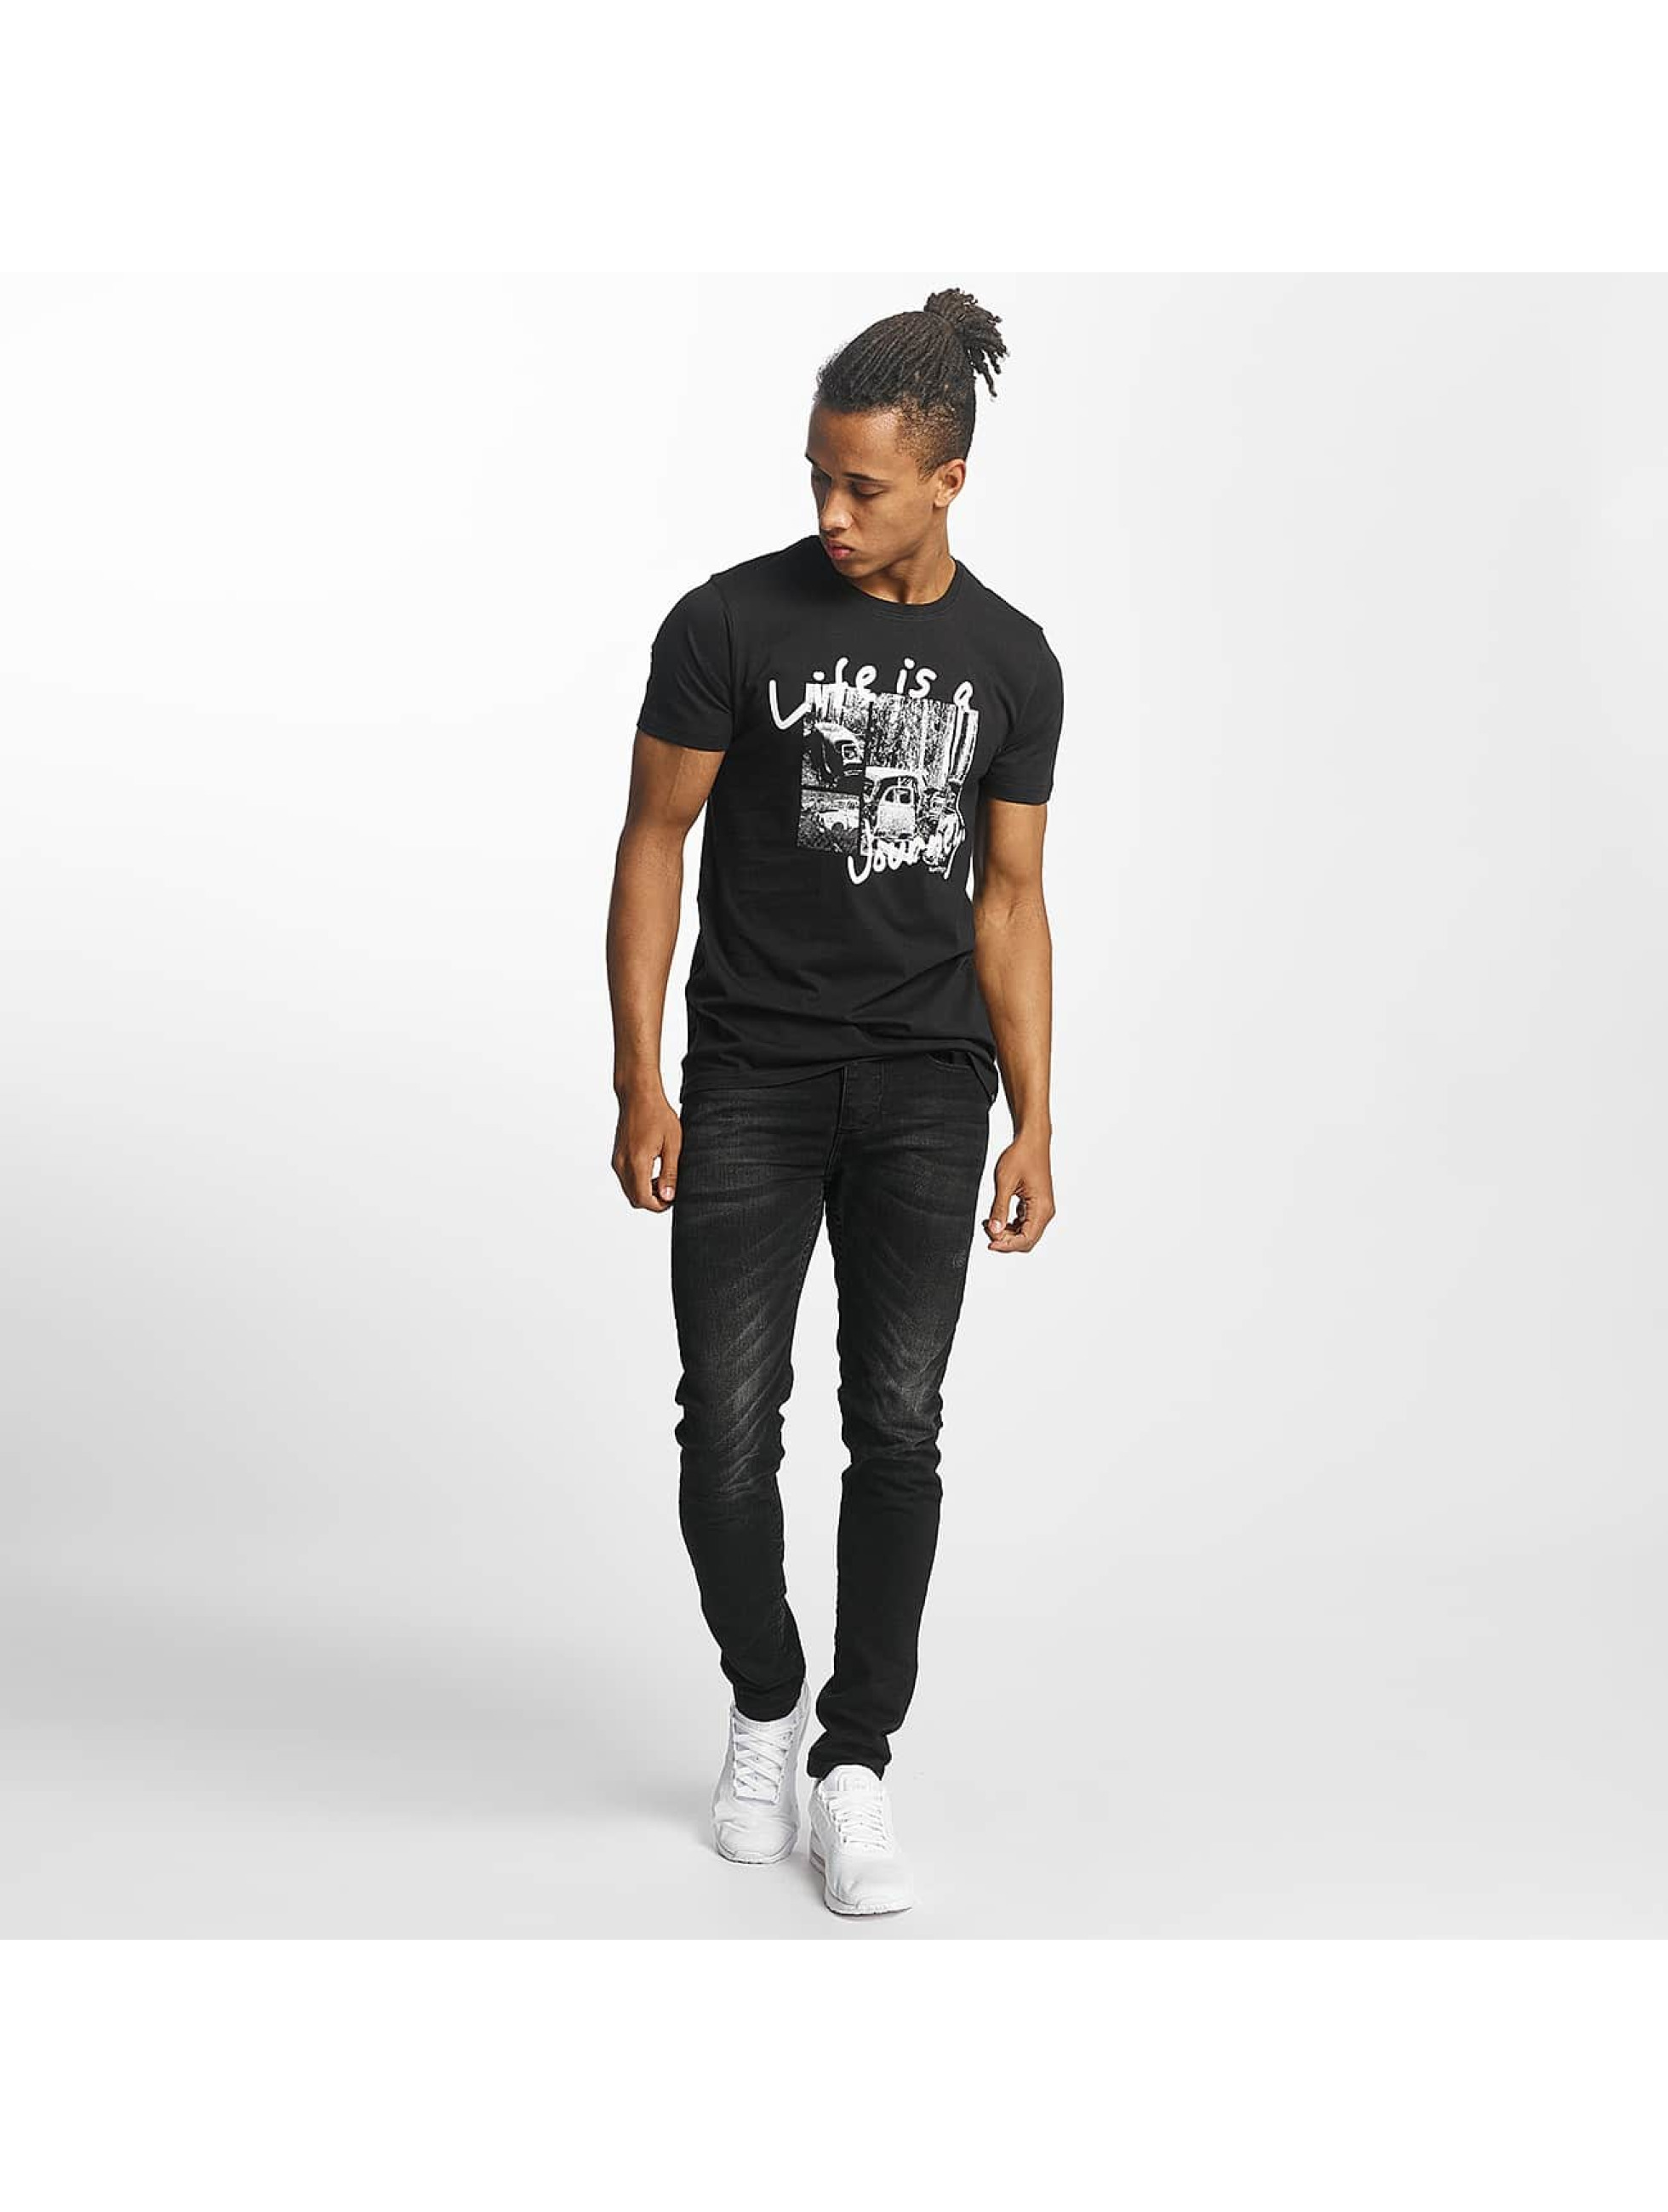 Paris Premium T-Shirt Life is a Journey black